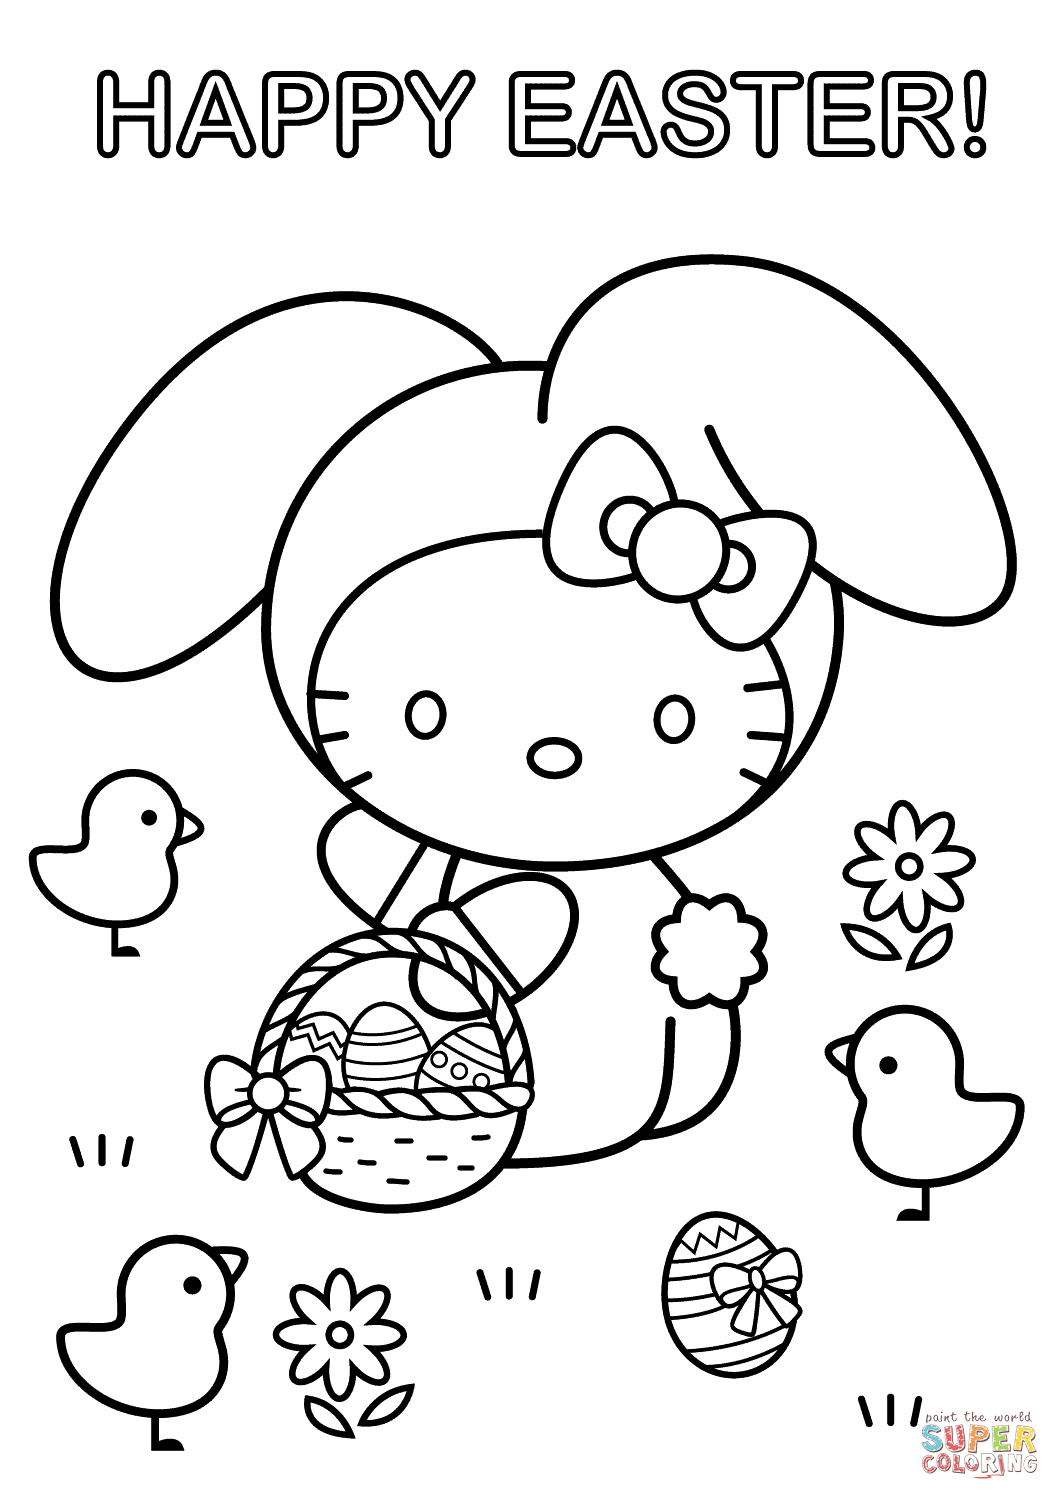 Paw Patrol Easter Coloring Pages At Getcolorings